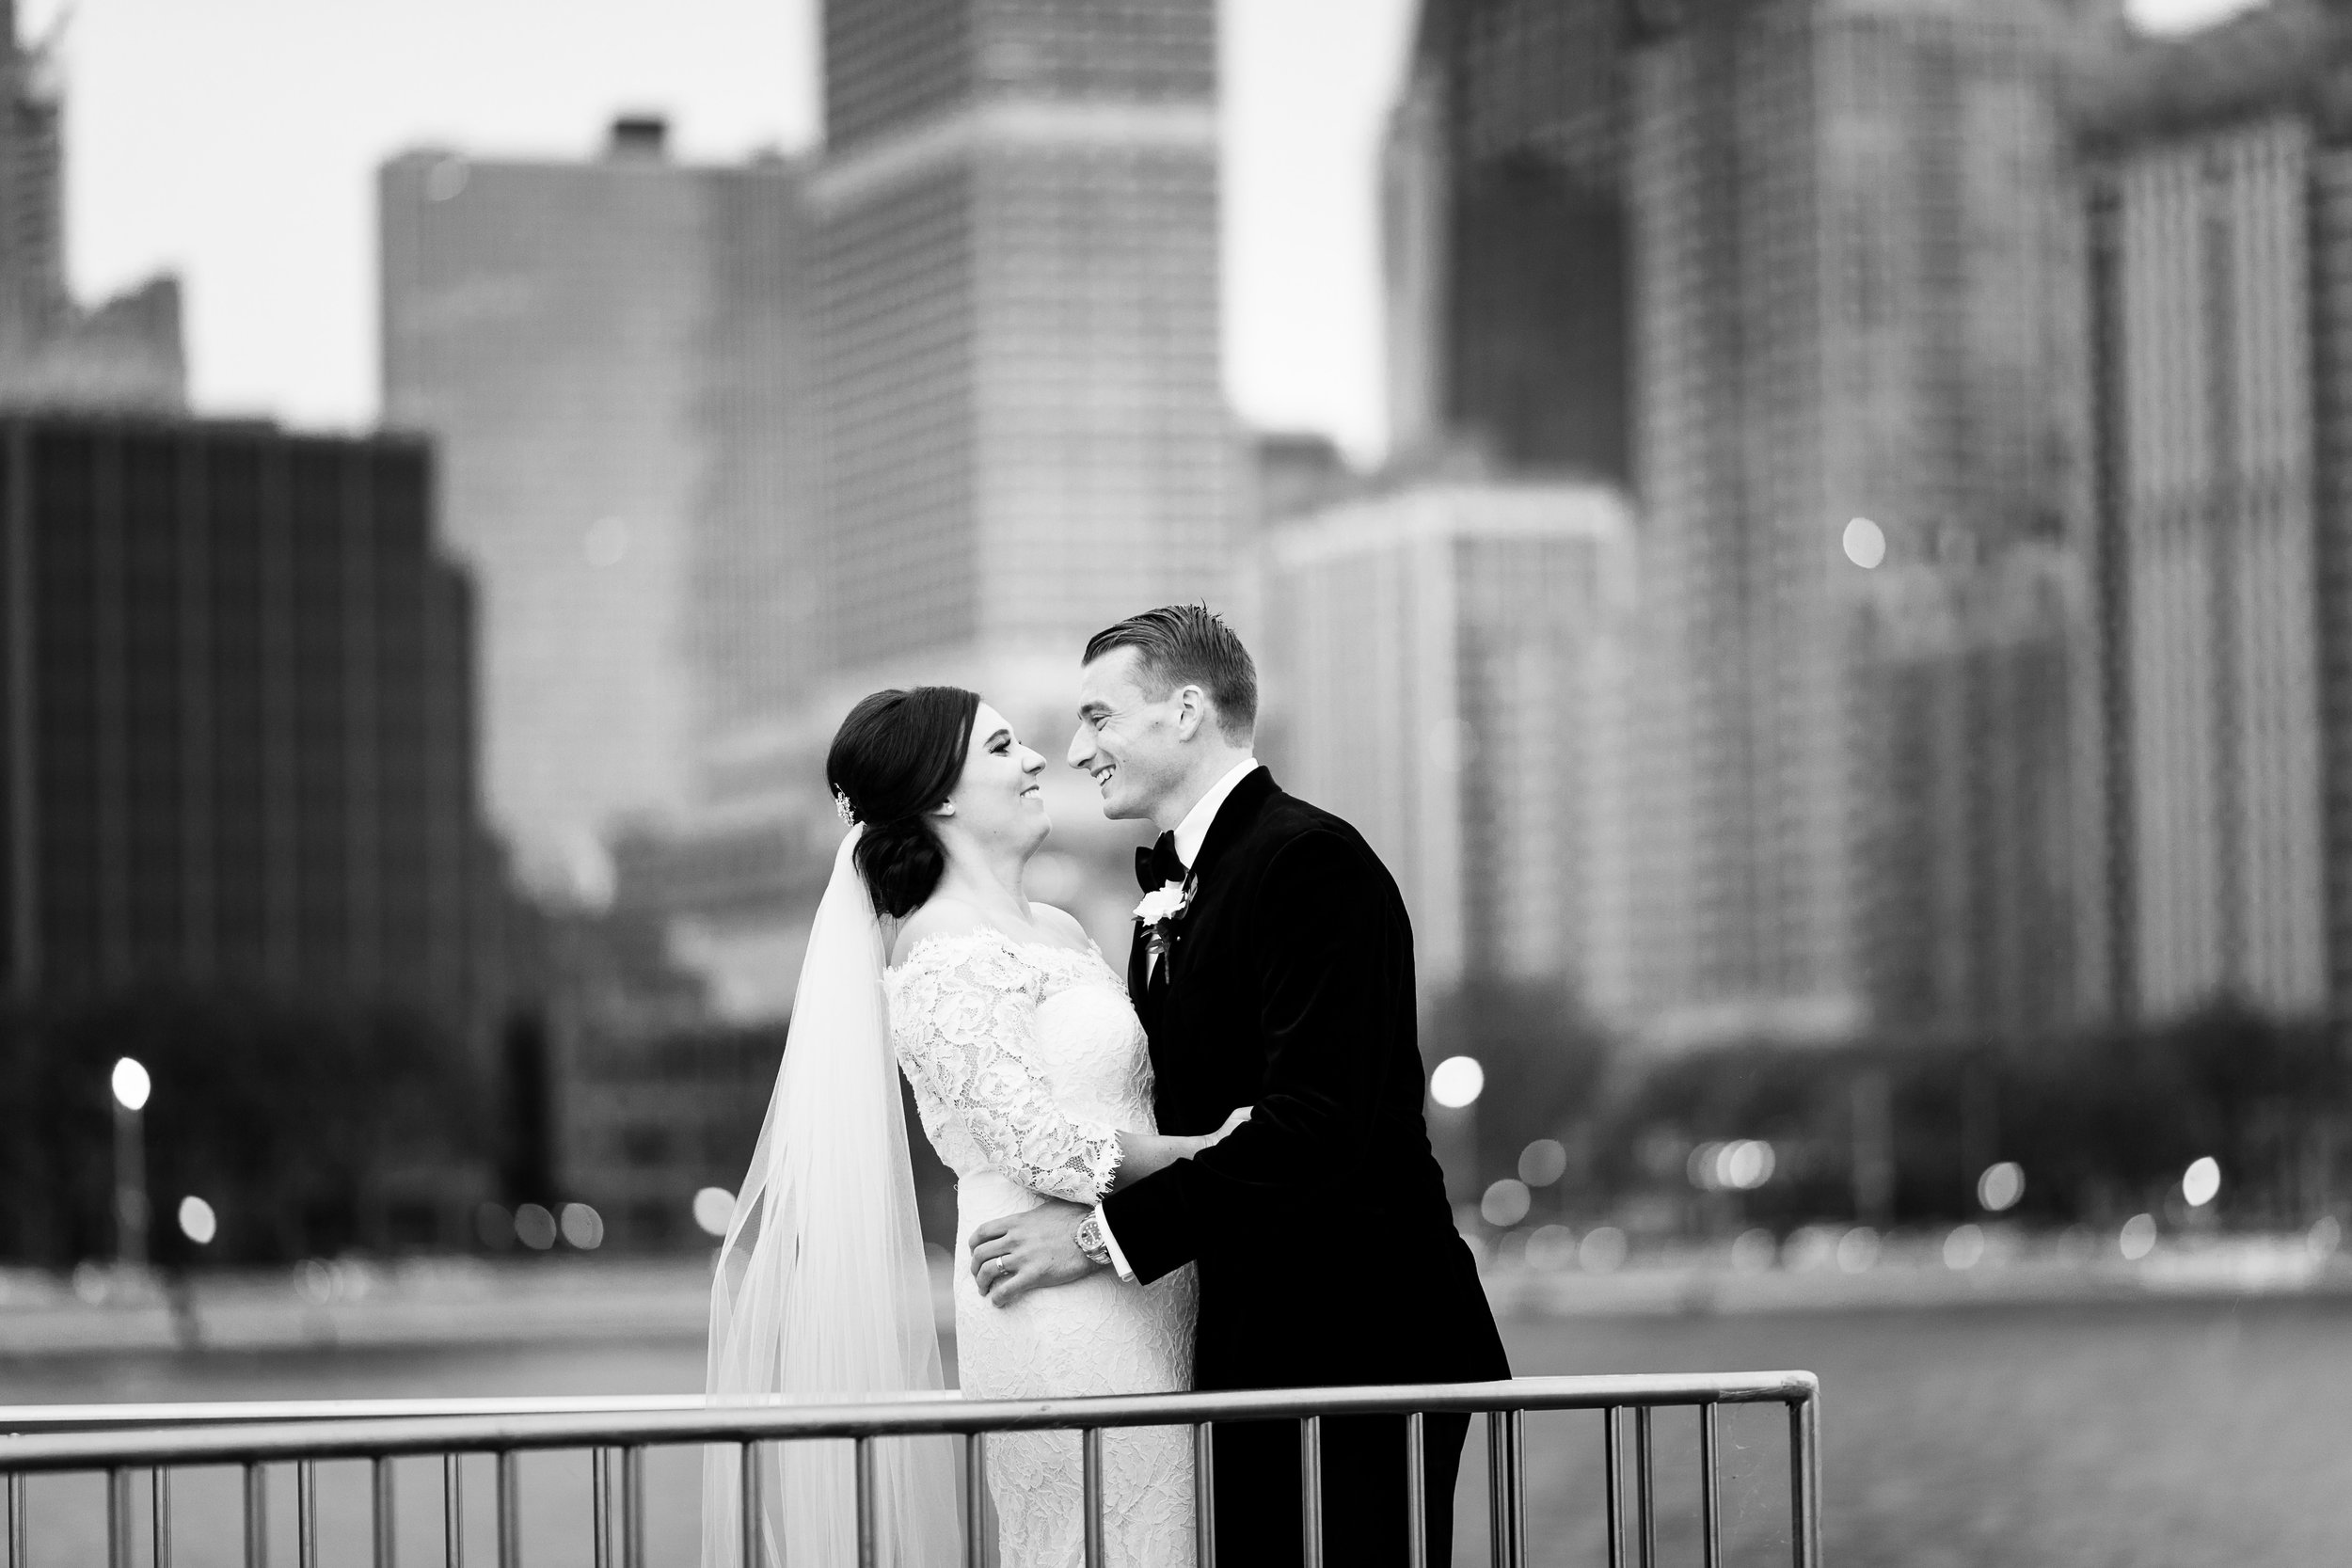 Union League Club of Chicago wedding captured by Studio This Is Photography. See more fall wedding ideas on CHItheeWED.com!